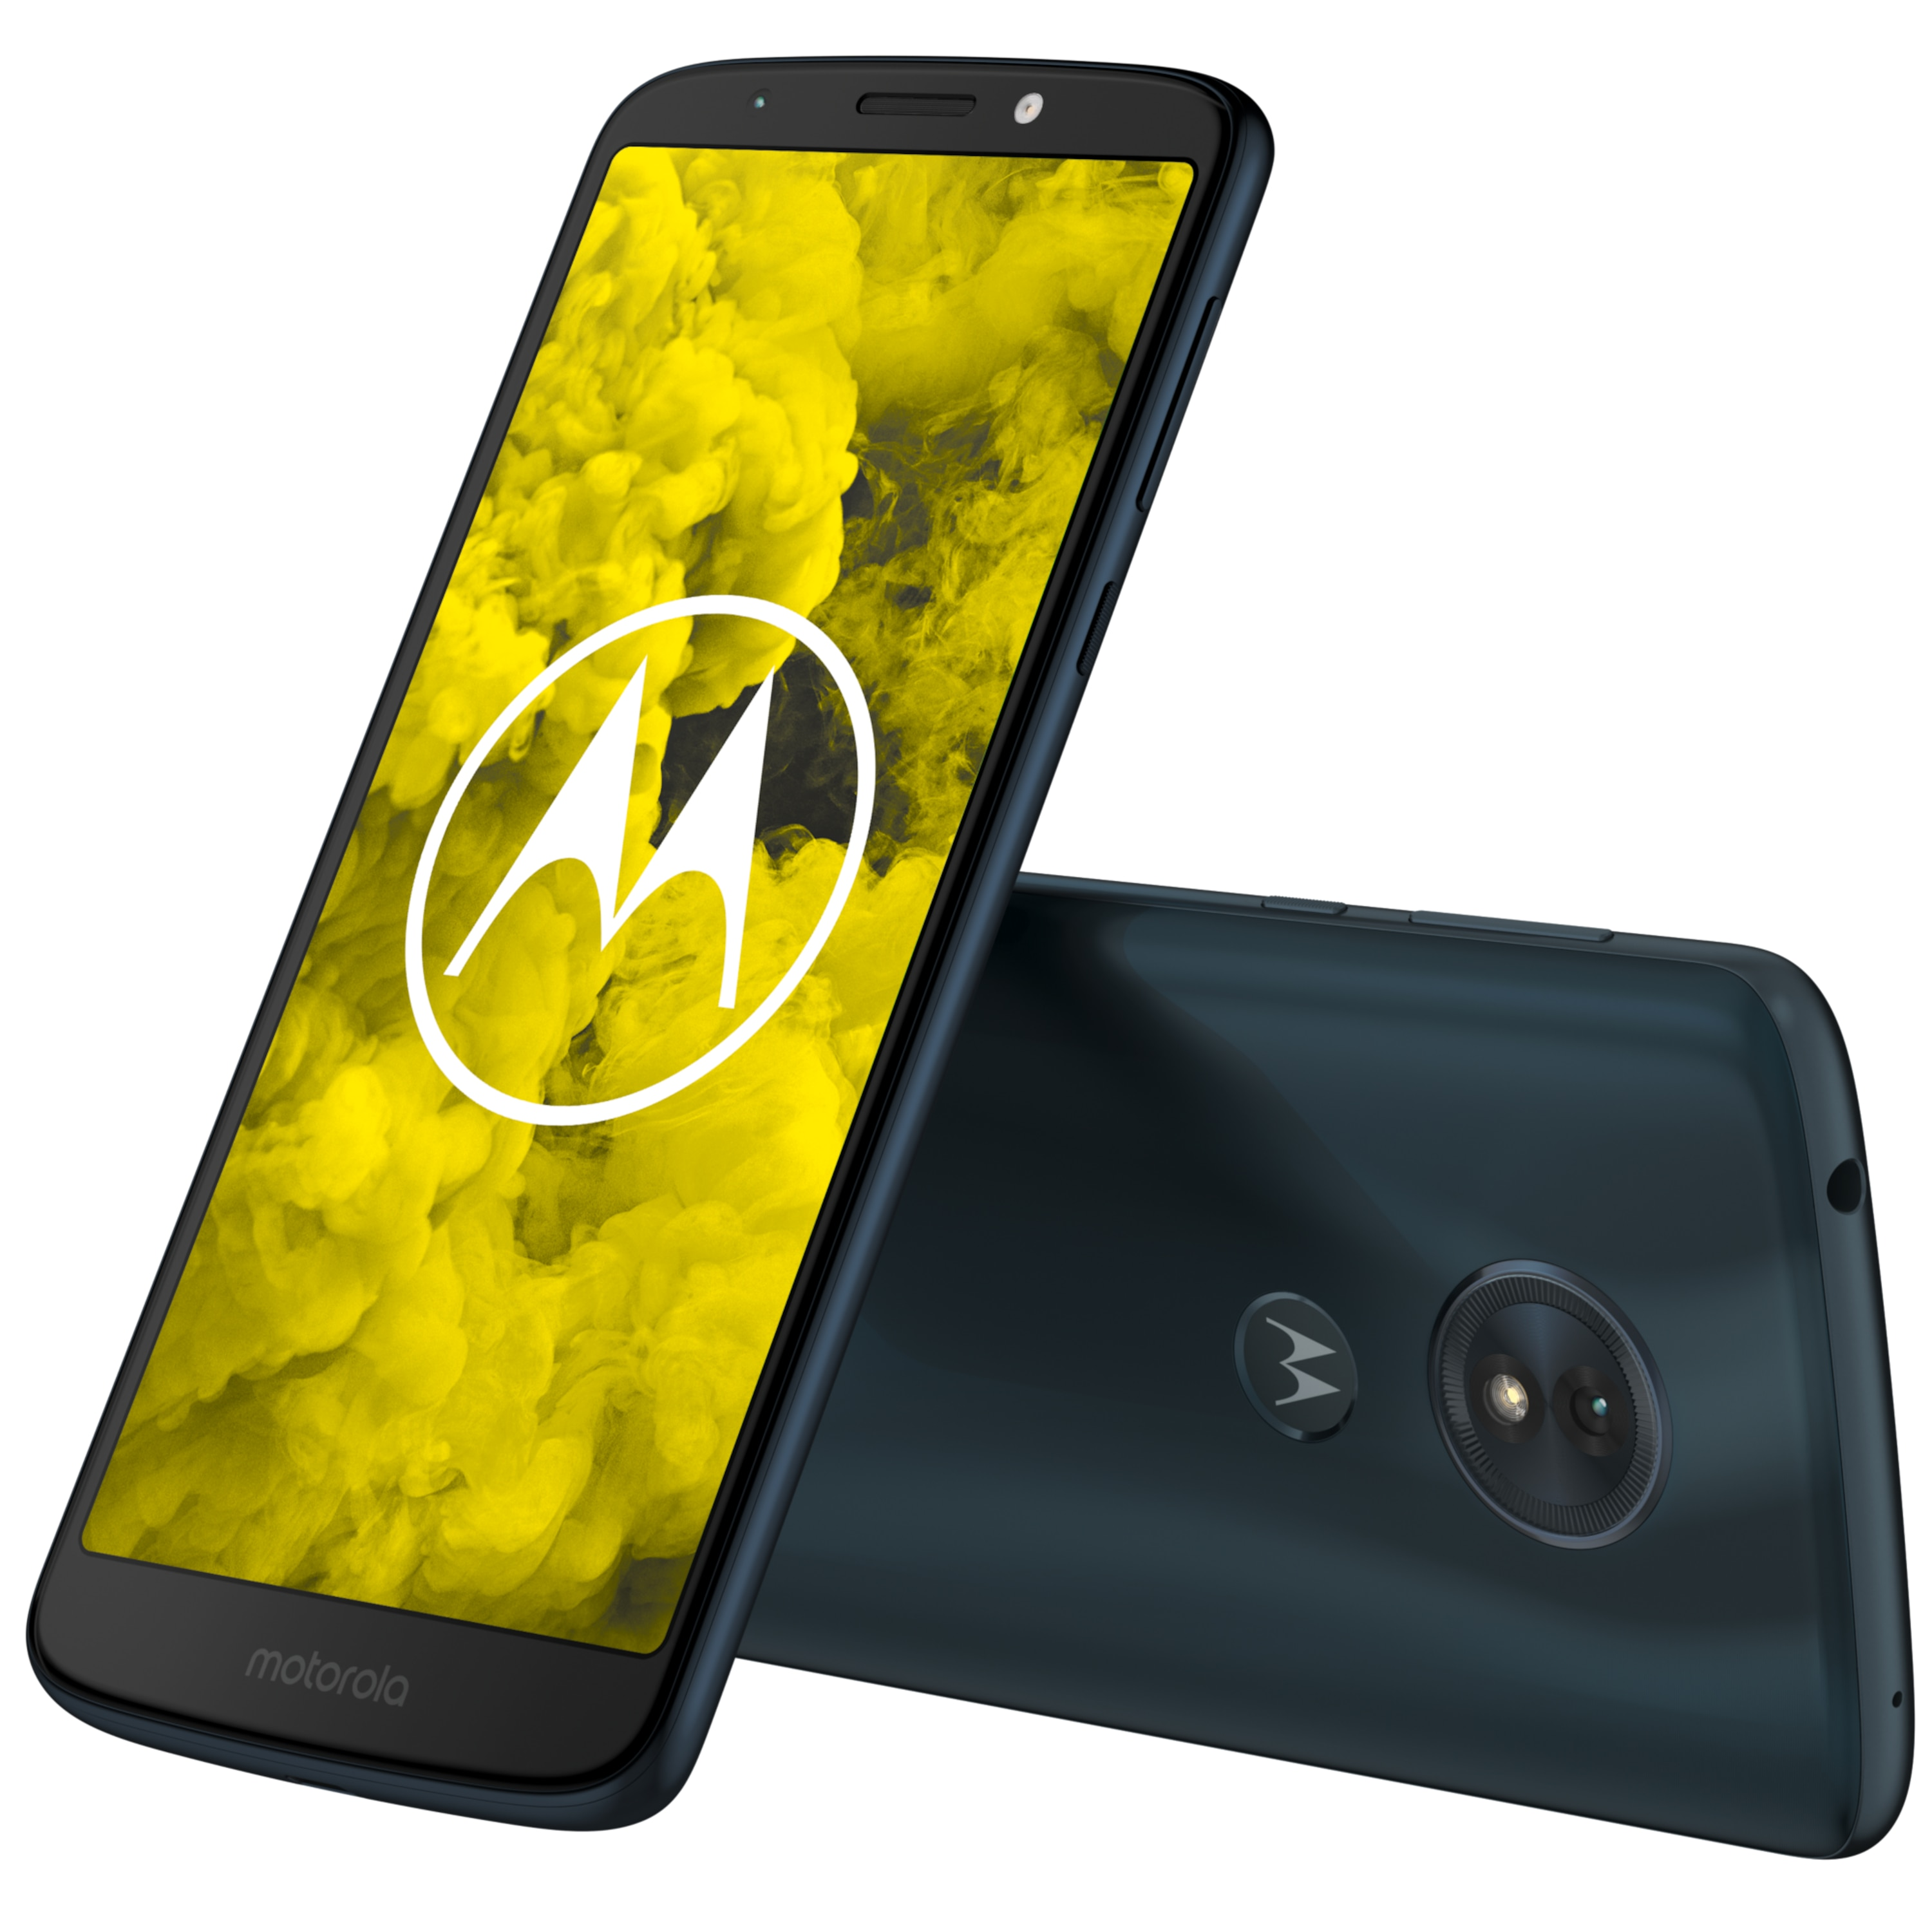 MOTOROLA moto g6 play Smartphone, 14,48 cm (5,7) HD+ Display, Android™ 8.0, 32 GB Speicher, Octa-Core-Prozessor